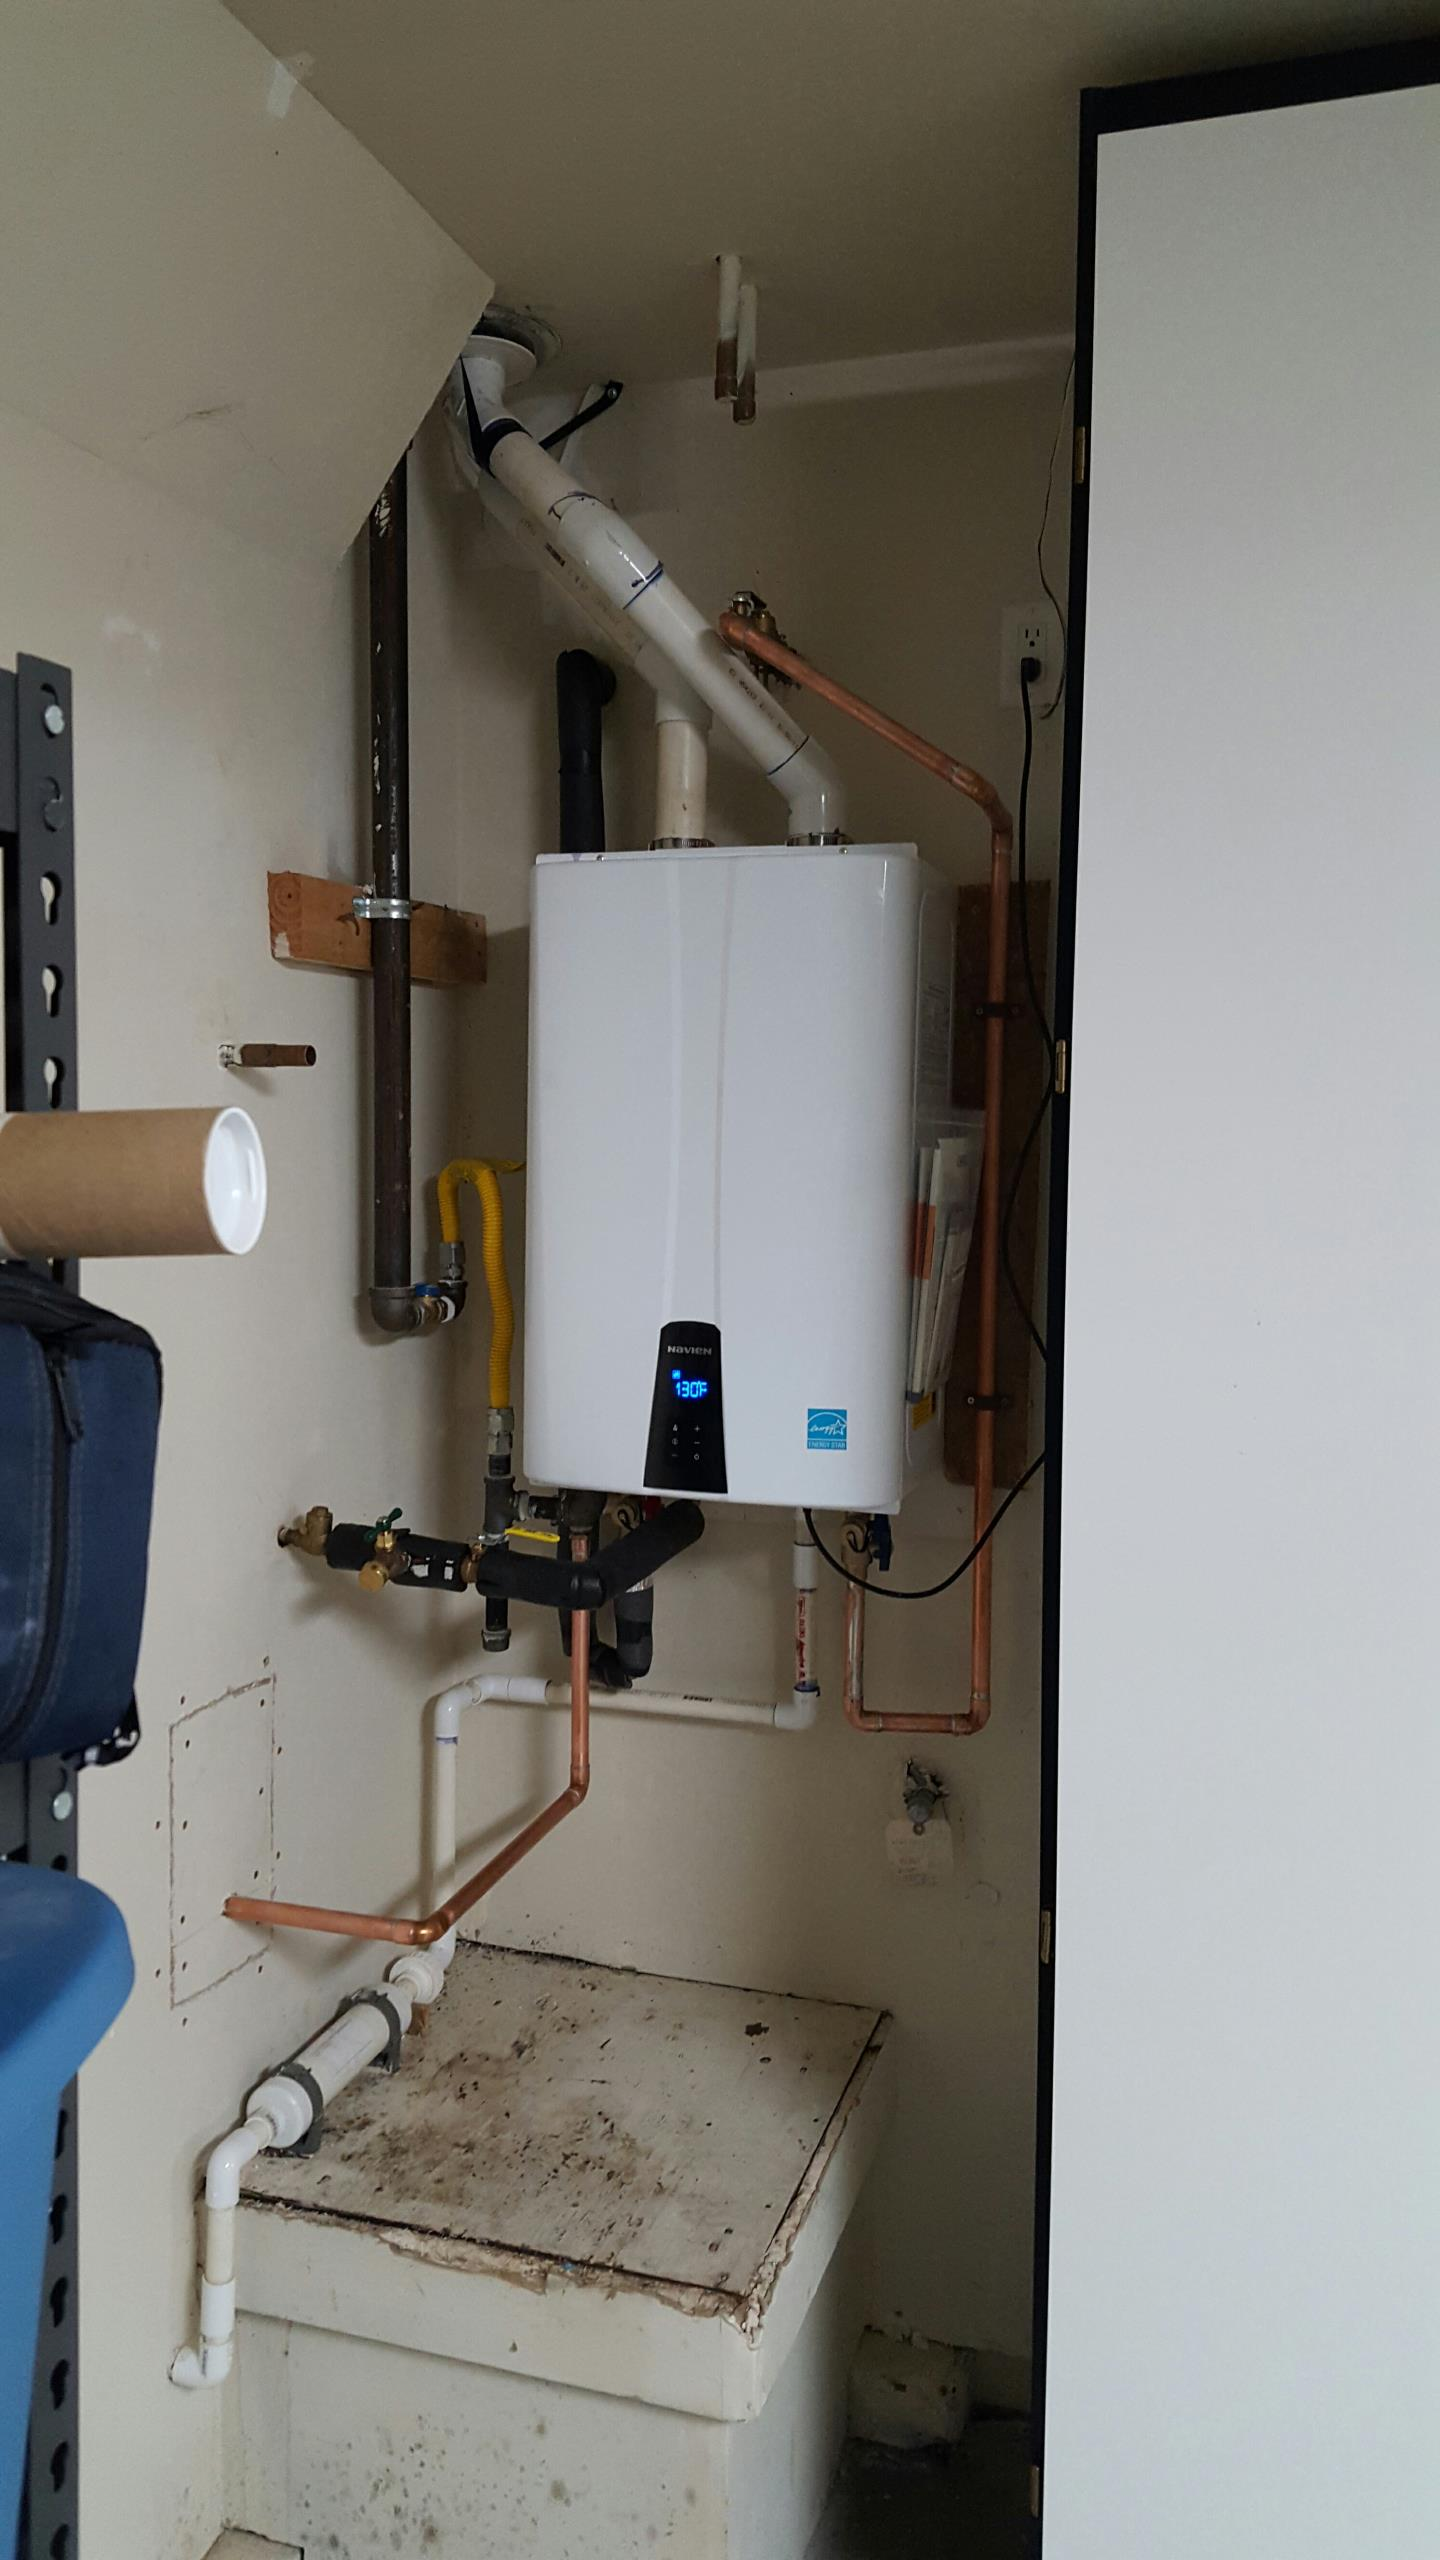 Heating AC plumbing Gold River California Installation of Navien tankless water heater with recert